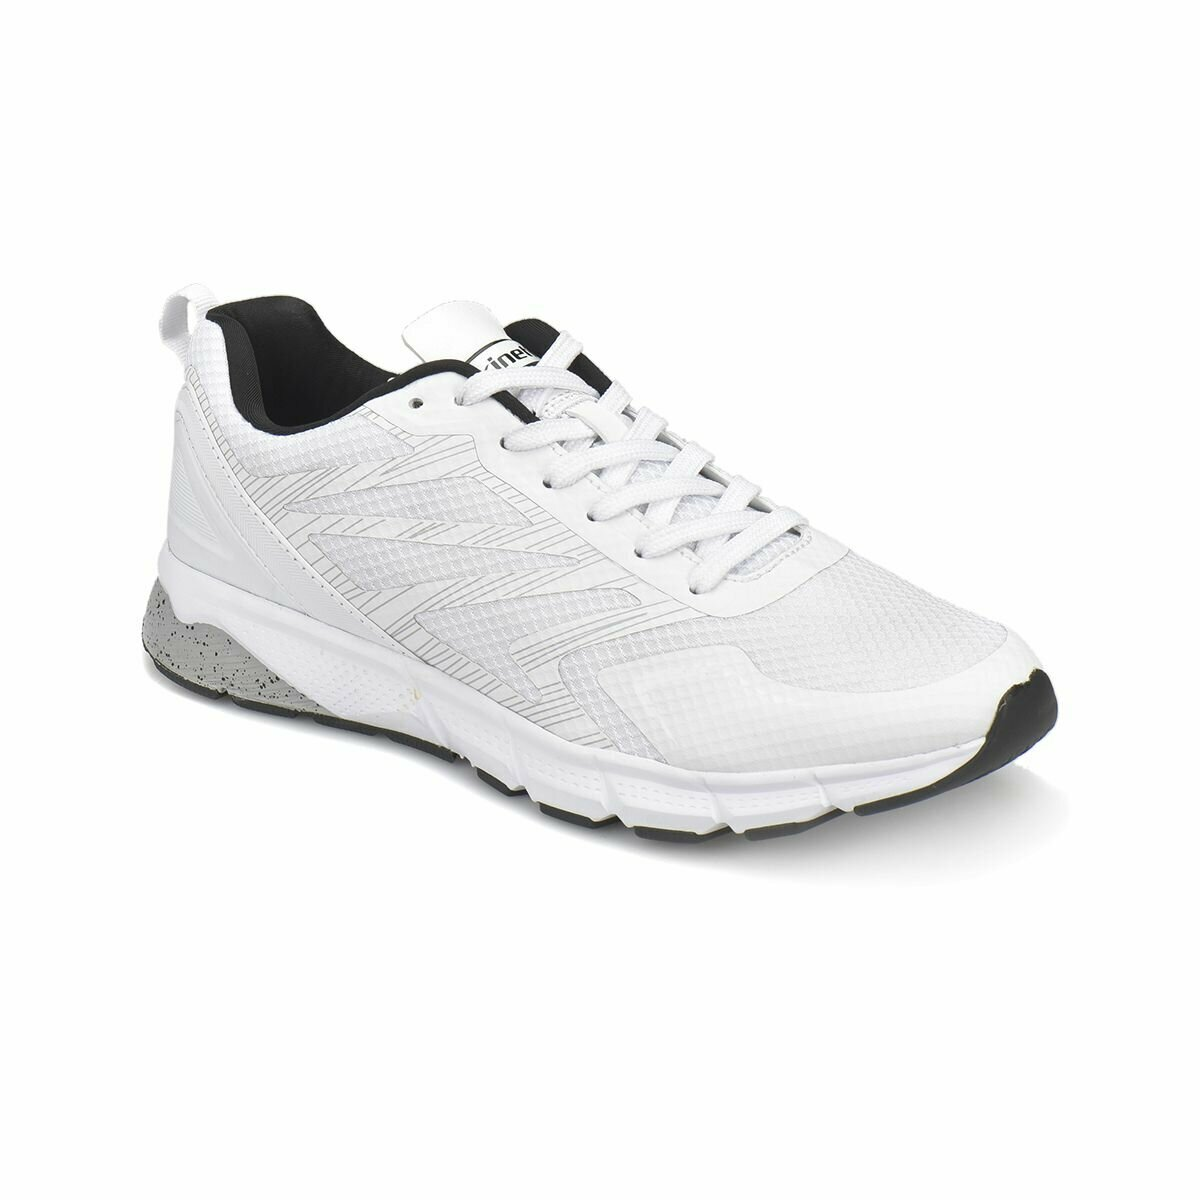 FLO FAZER White Men 'S Fitness Shoes KINETIX